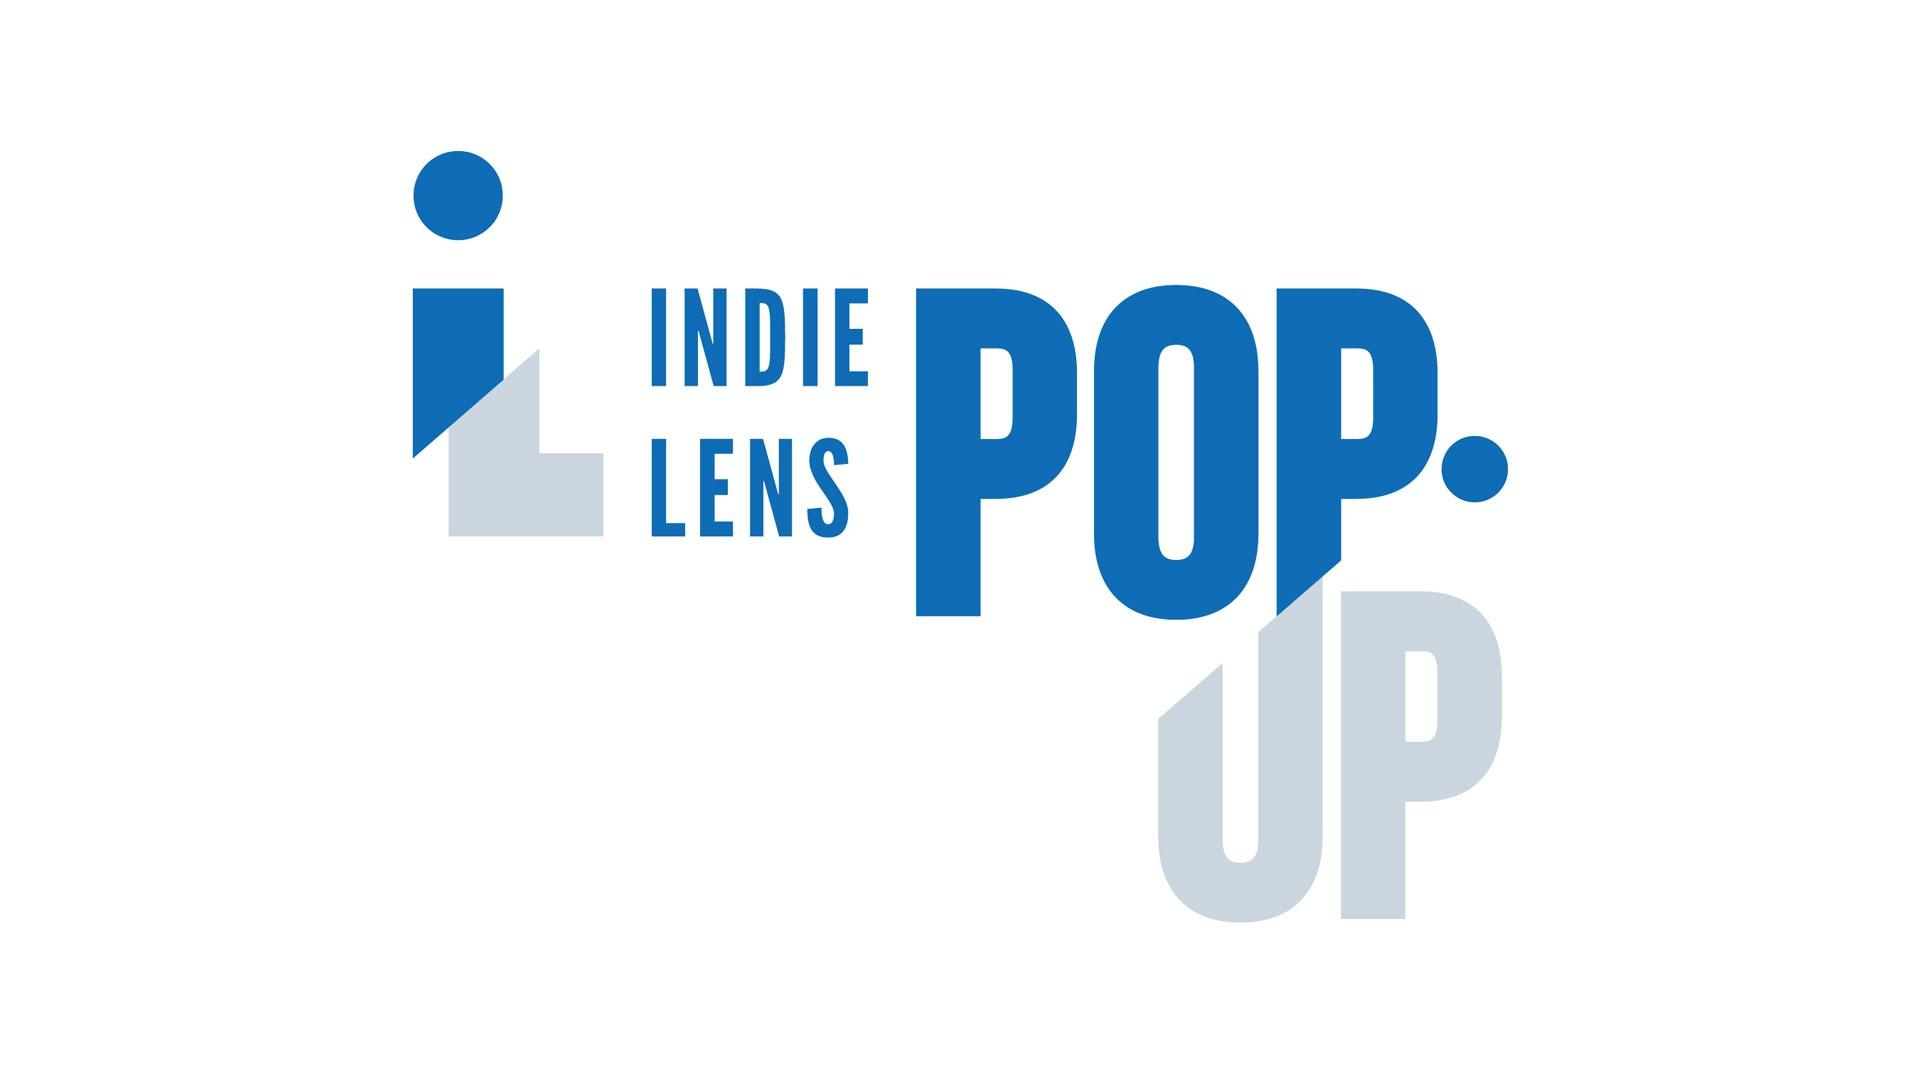 Indie Lens Pop-Up written on plain white background